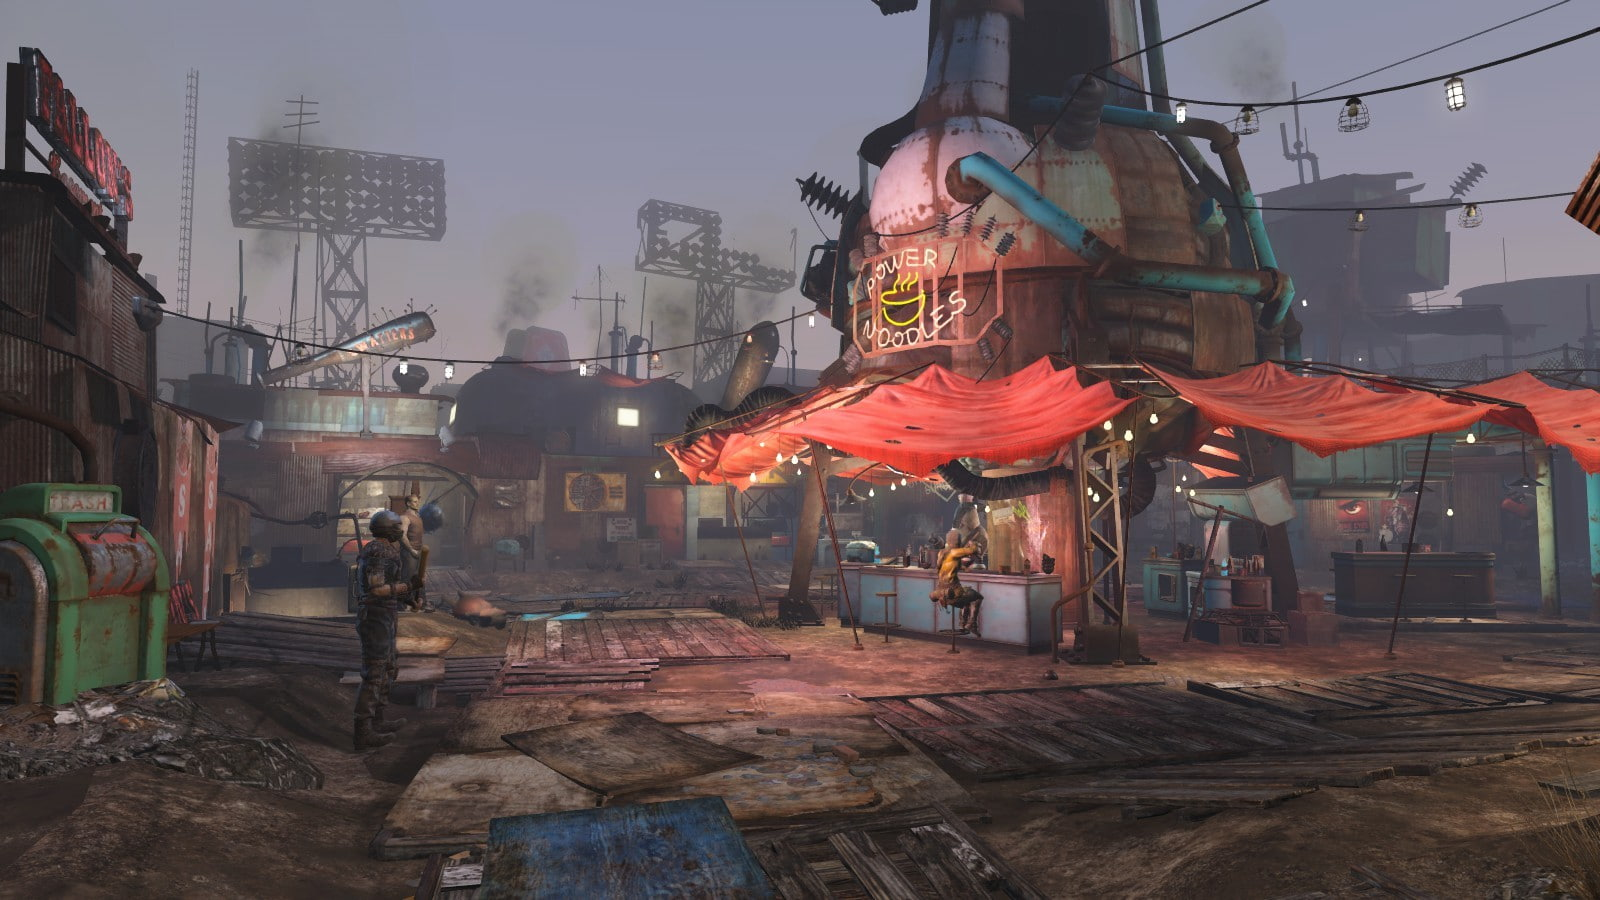 HD wallpaper Fallout 4 Diamond City robot cook apocalyptic 1600x900